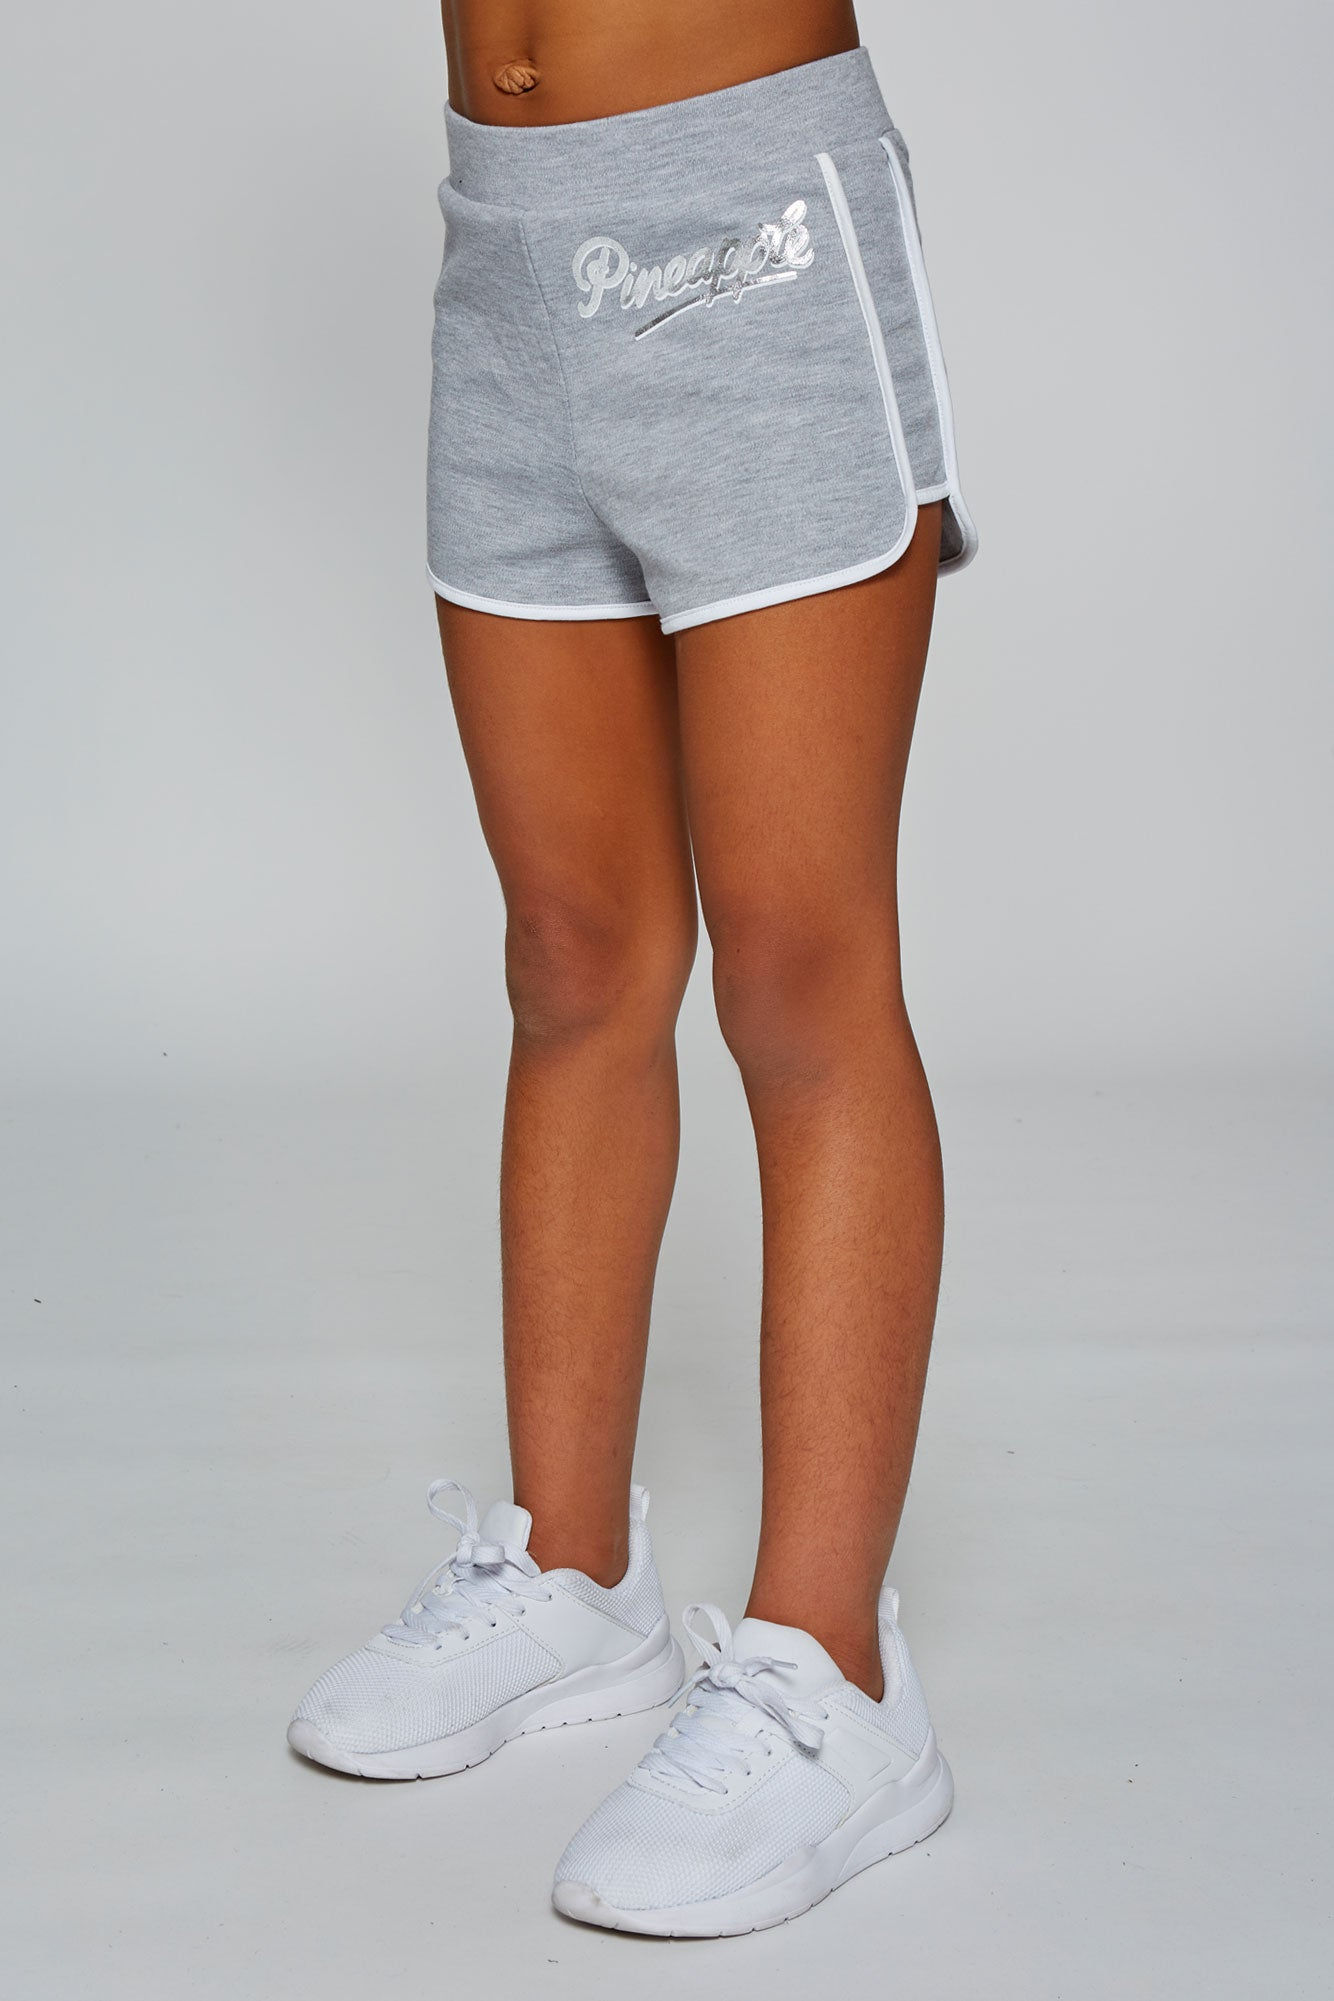 Pineapple Dance Girls' Grey Marl Sporty Shorts PS1558CA3